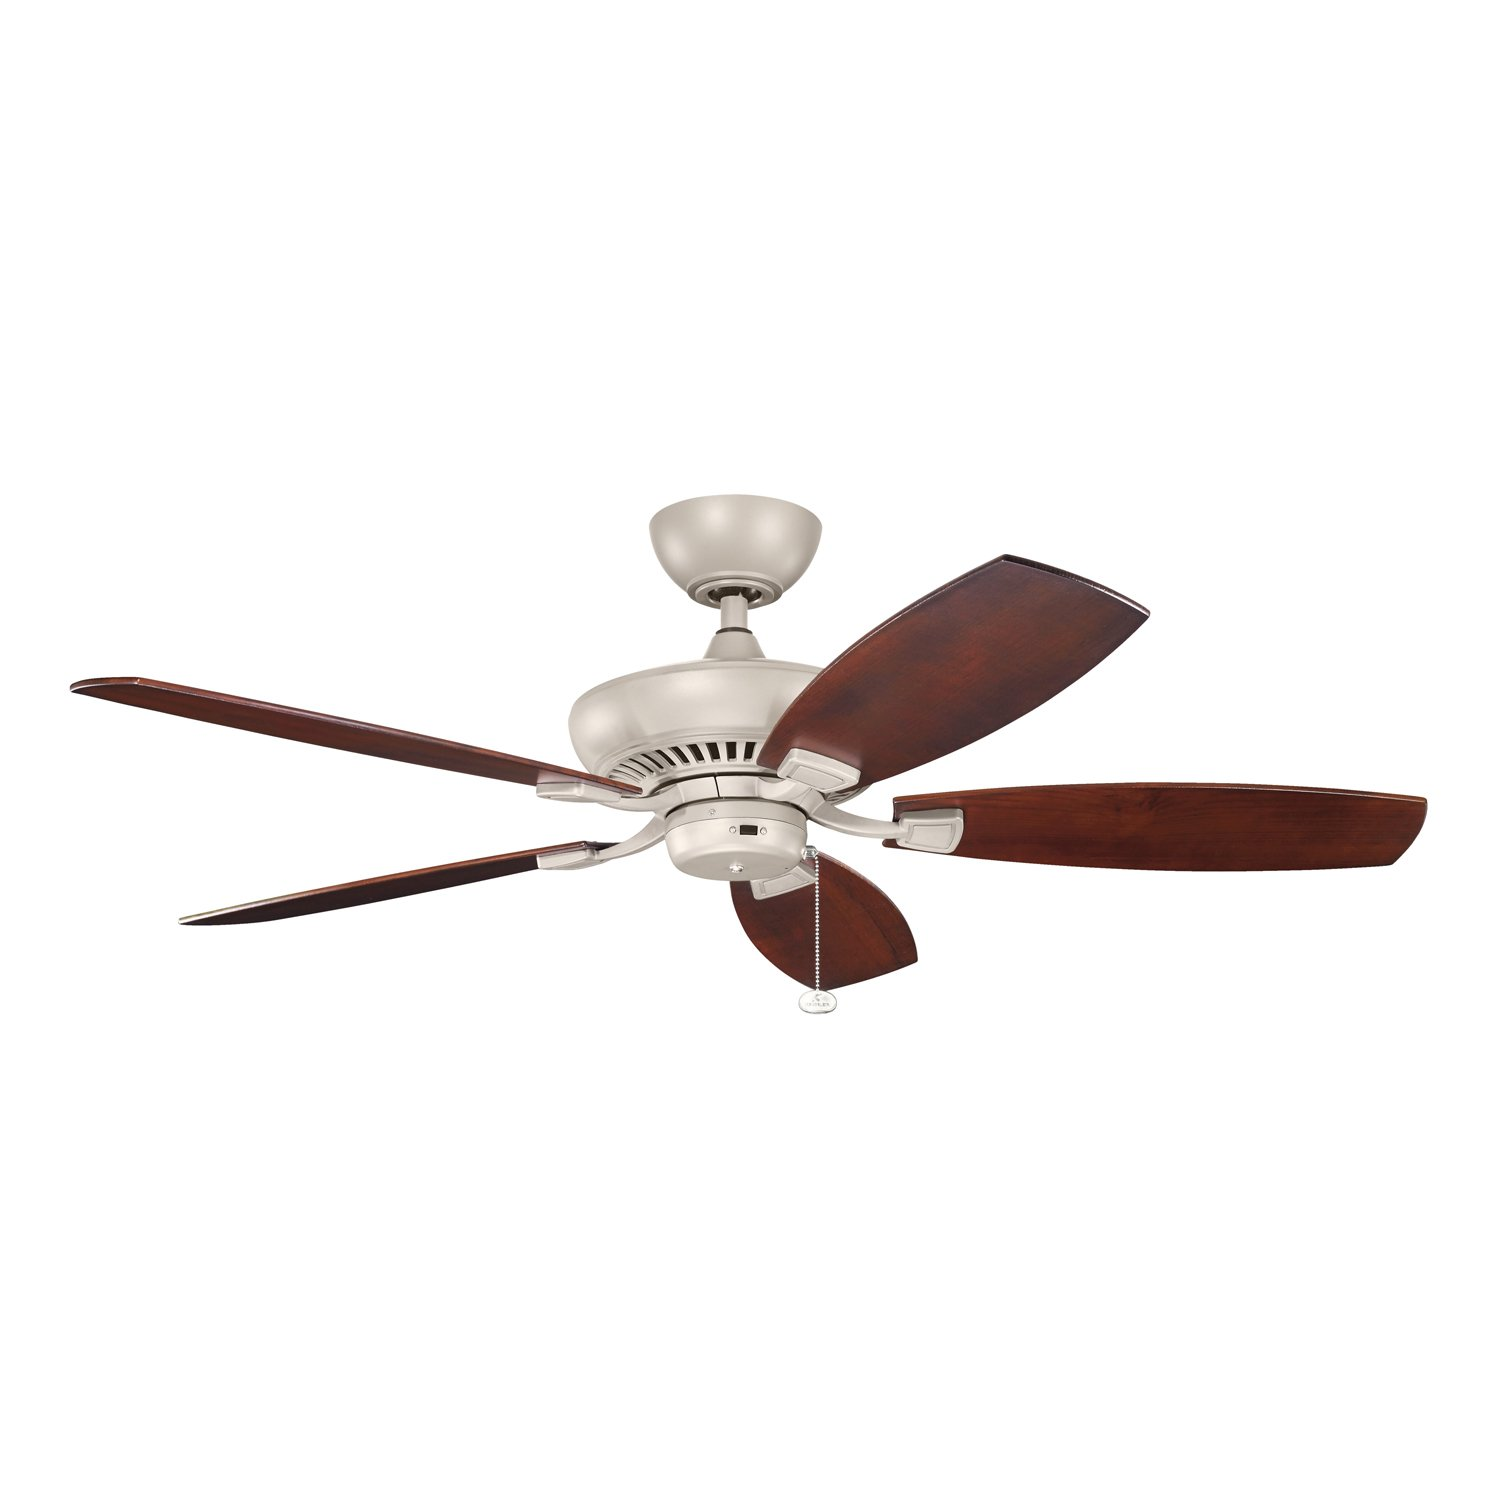 light white for fan low ceilings great remote fans ceiling outdoor residential large house with small decoration inch room caged and propeller